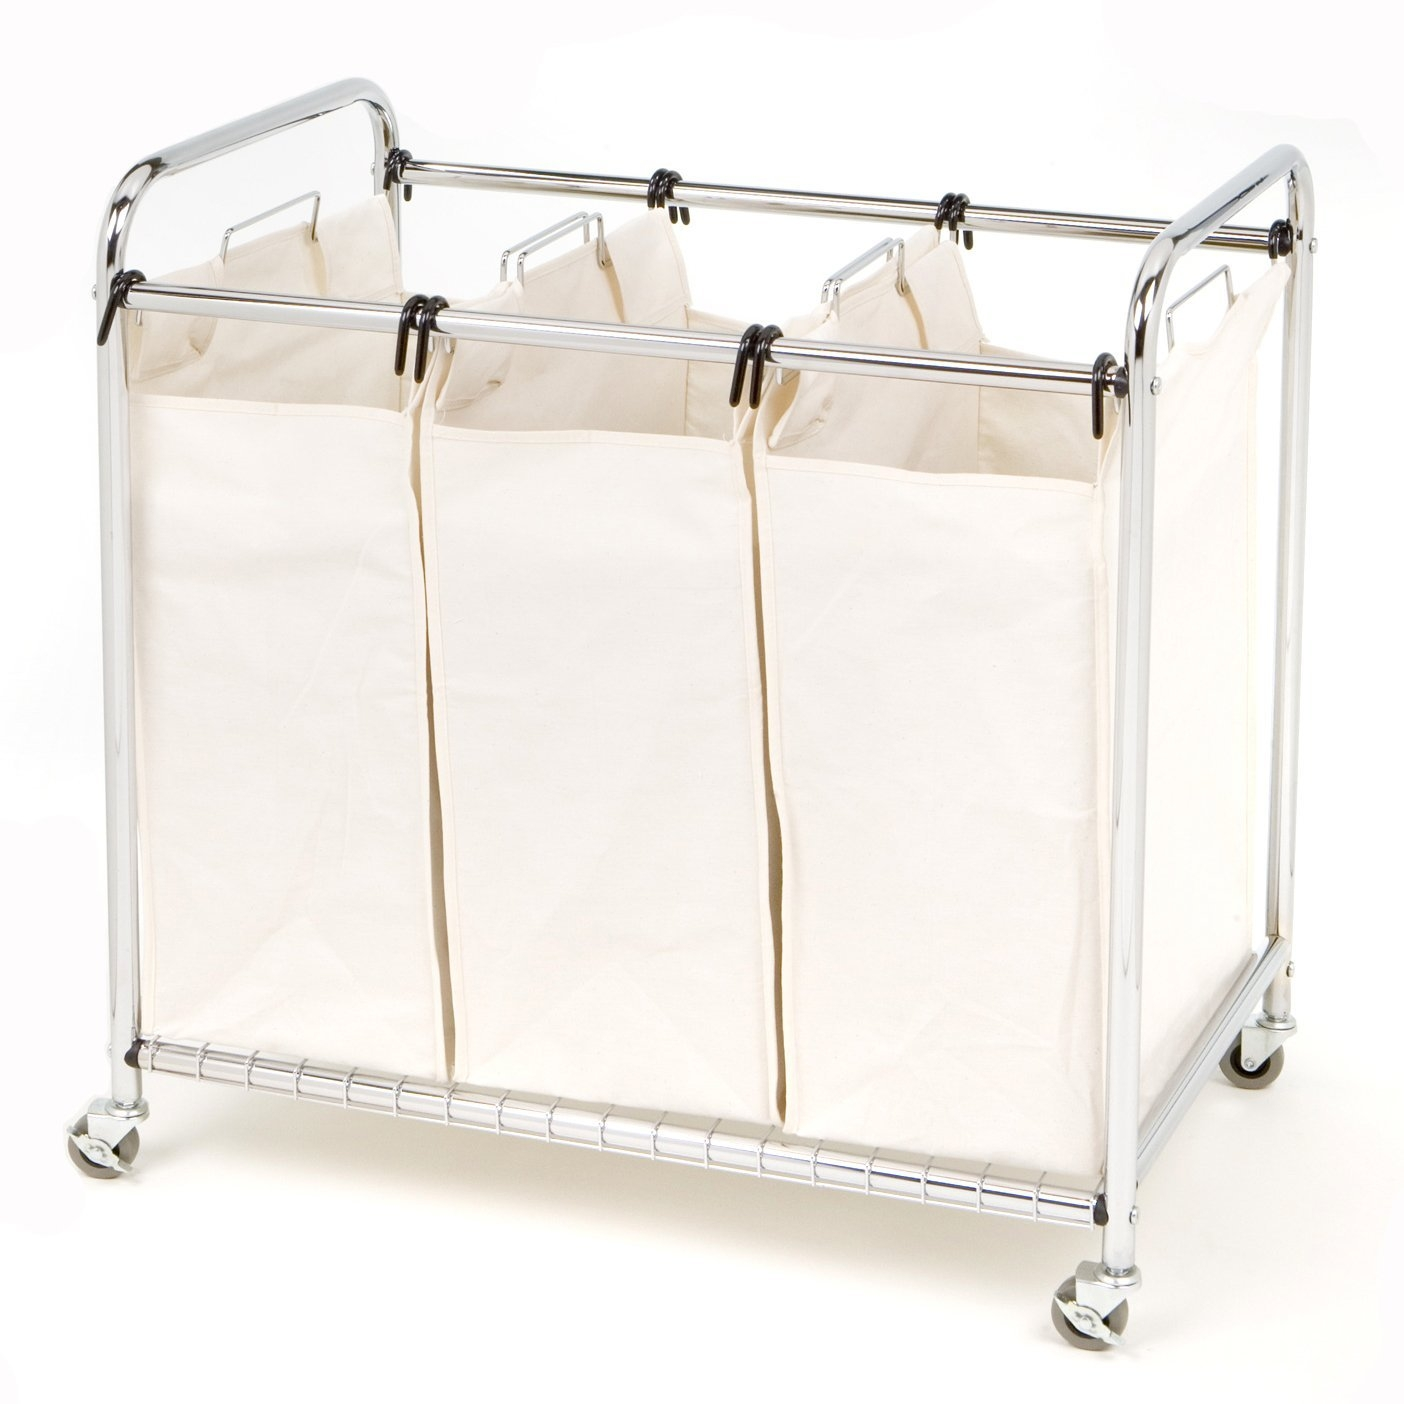 "Commercial-Grade Steel Frame 3-Bag Laundry Hamper Cart, SCLH46681 :  This Commercial-Grade Steel Frame 3-Bag Laundry Hamper Cart will keep your colors, whites and delicates separate. Each heavy duty draw string canvas bag can hold up to one load of laundry. Constructed from chrome wire frame, this unit can also move easily with his lockable wheels. The bags are also supported by a wire grid tray system on the bottom shelf for added support. This unit measures 30.75-inches by 18-inches and by 33-inches high. 3 large removable heavy-duty canvas bags (each 15.75"" W x 8.66"" D x 23.62"" H) with steel handles for easy lifting; Wire grid base provides extra support for canvas sorter bags."